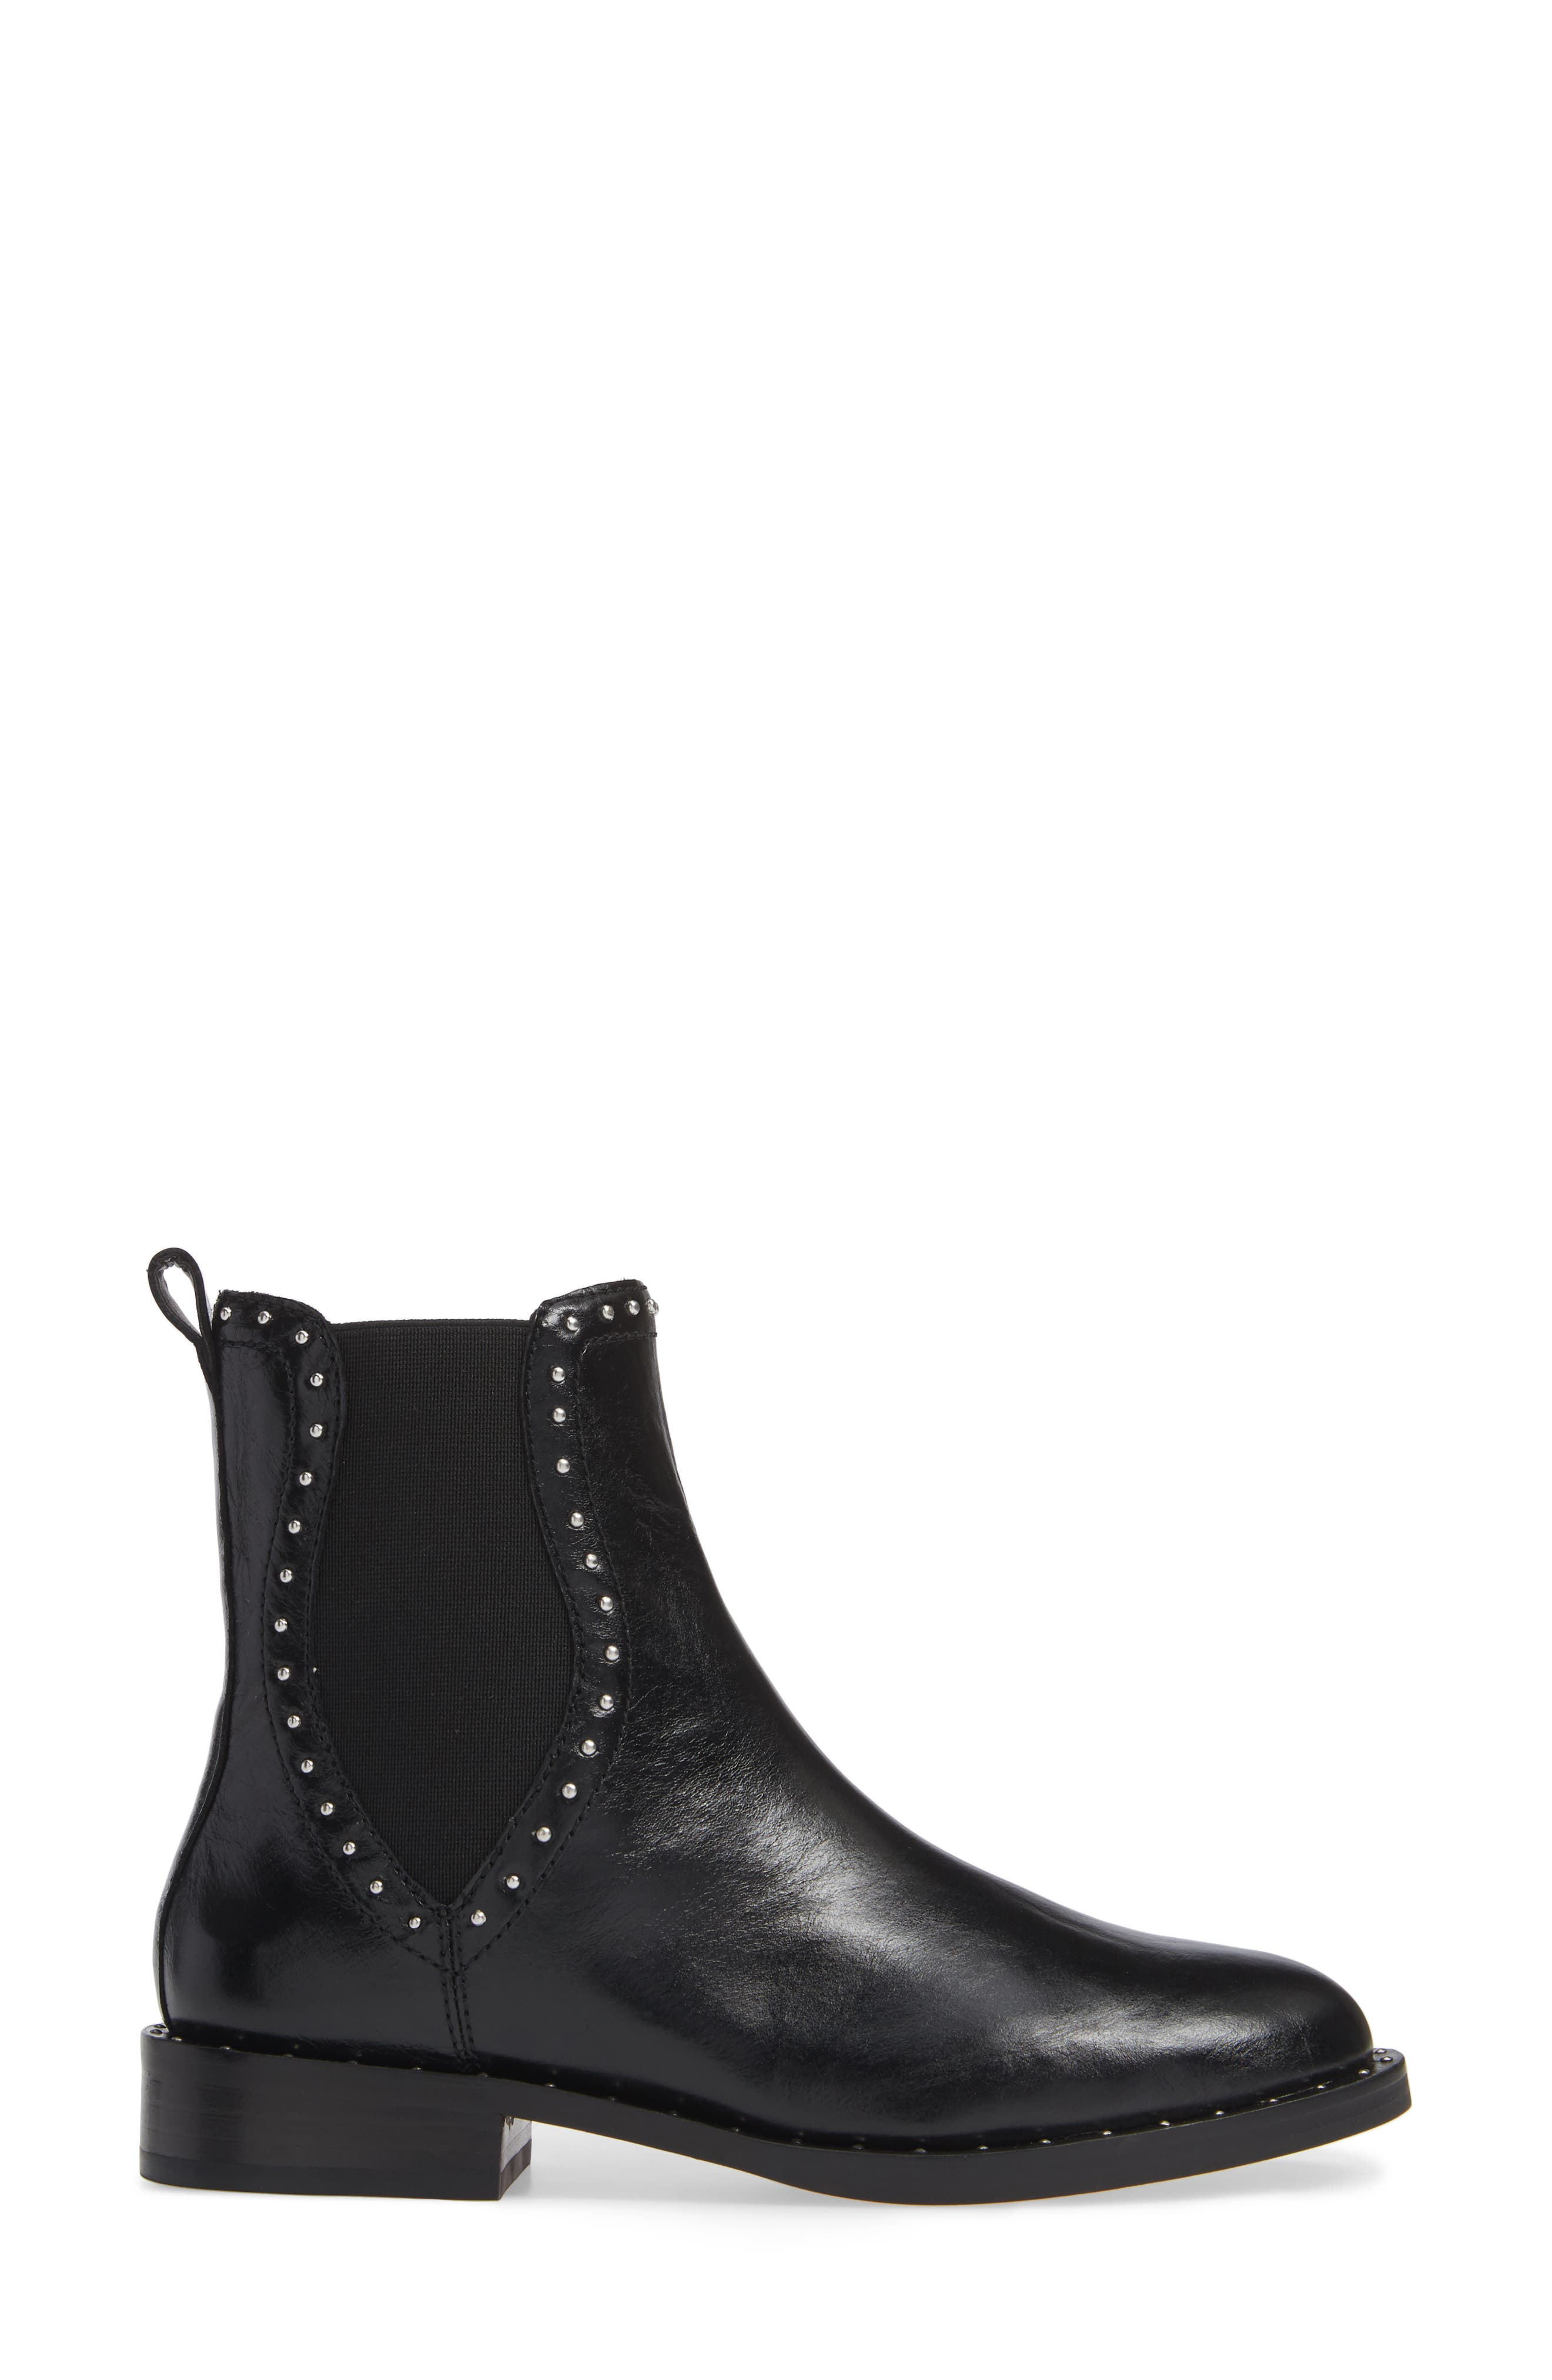 Sabeen Chelsea Bootie,                             Alternate thumbnail 3, color,                             BLACK LEATHER